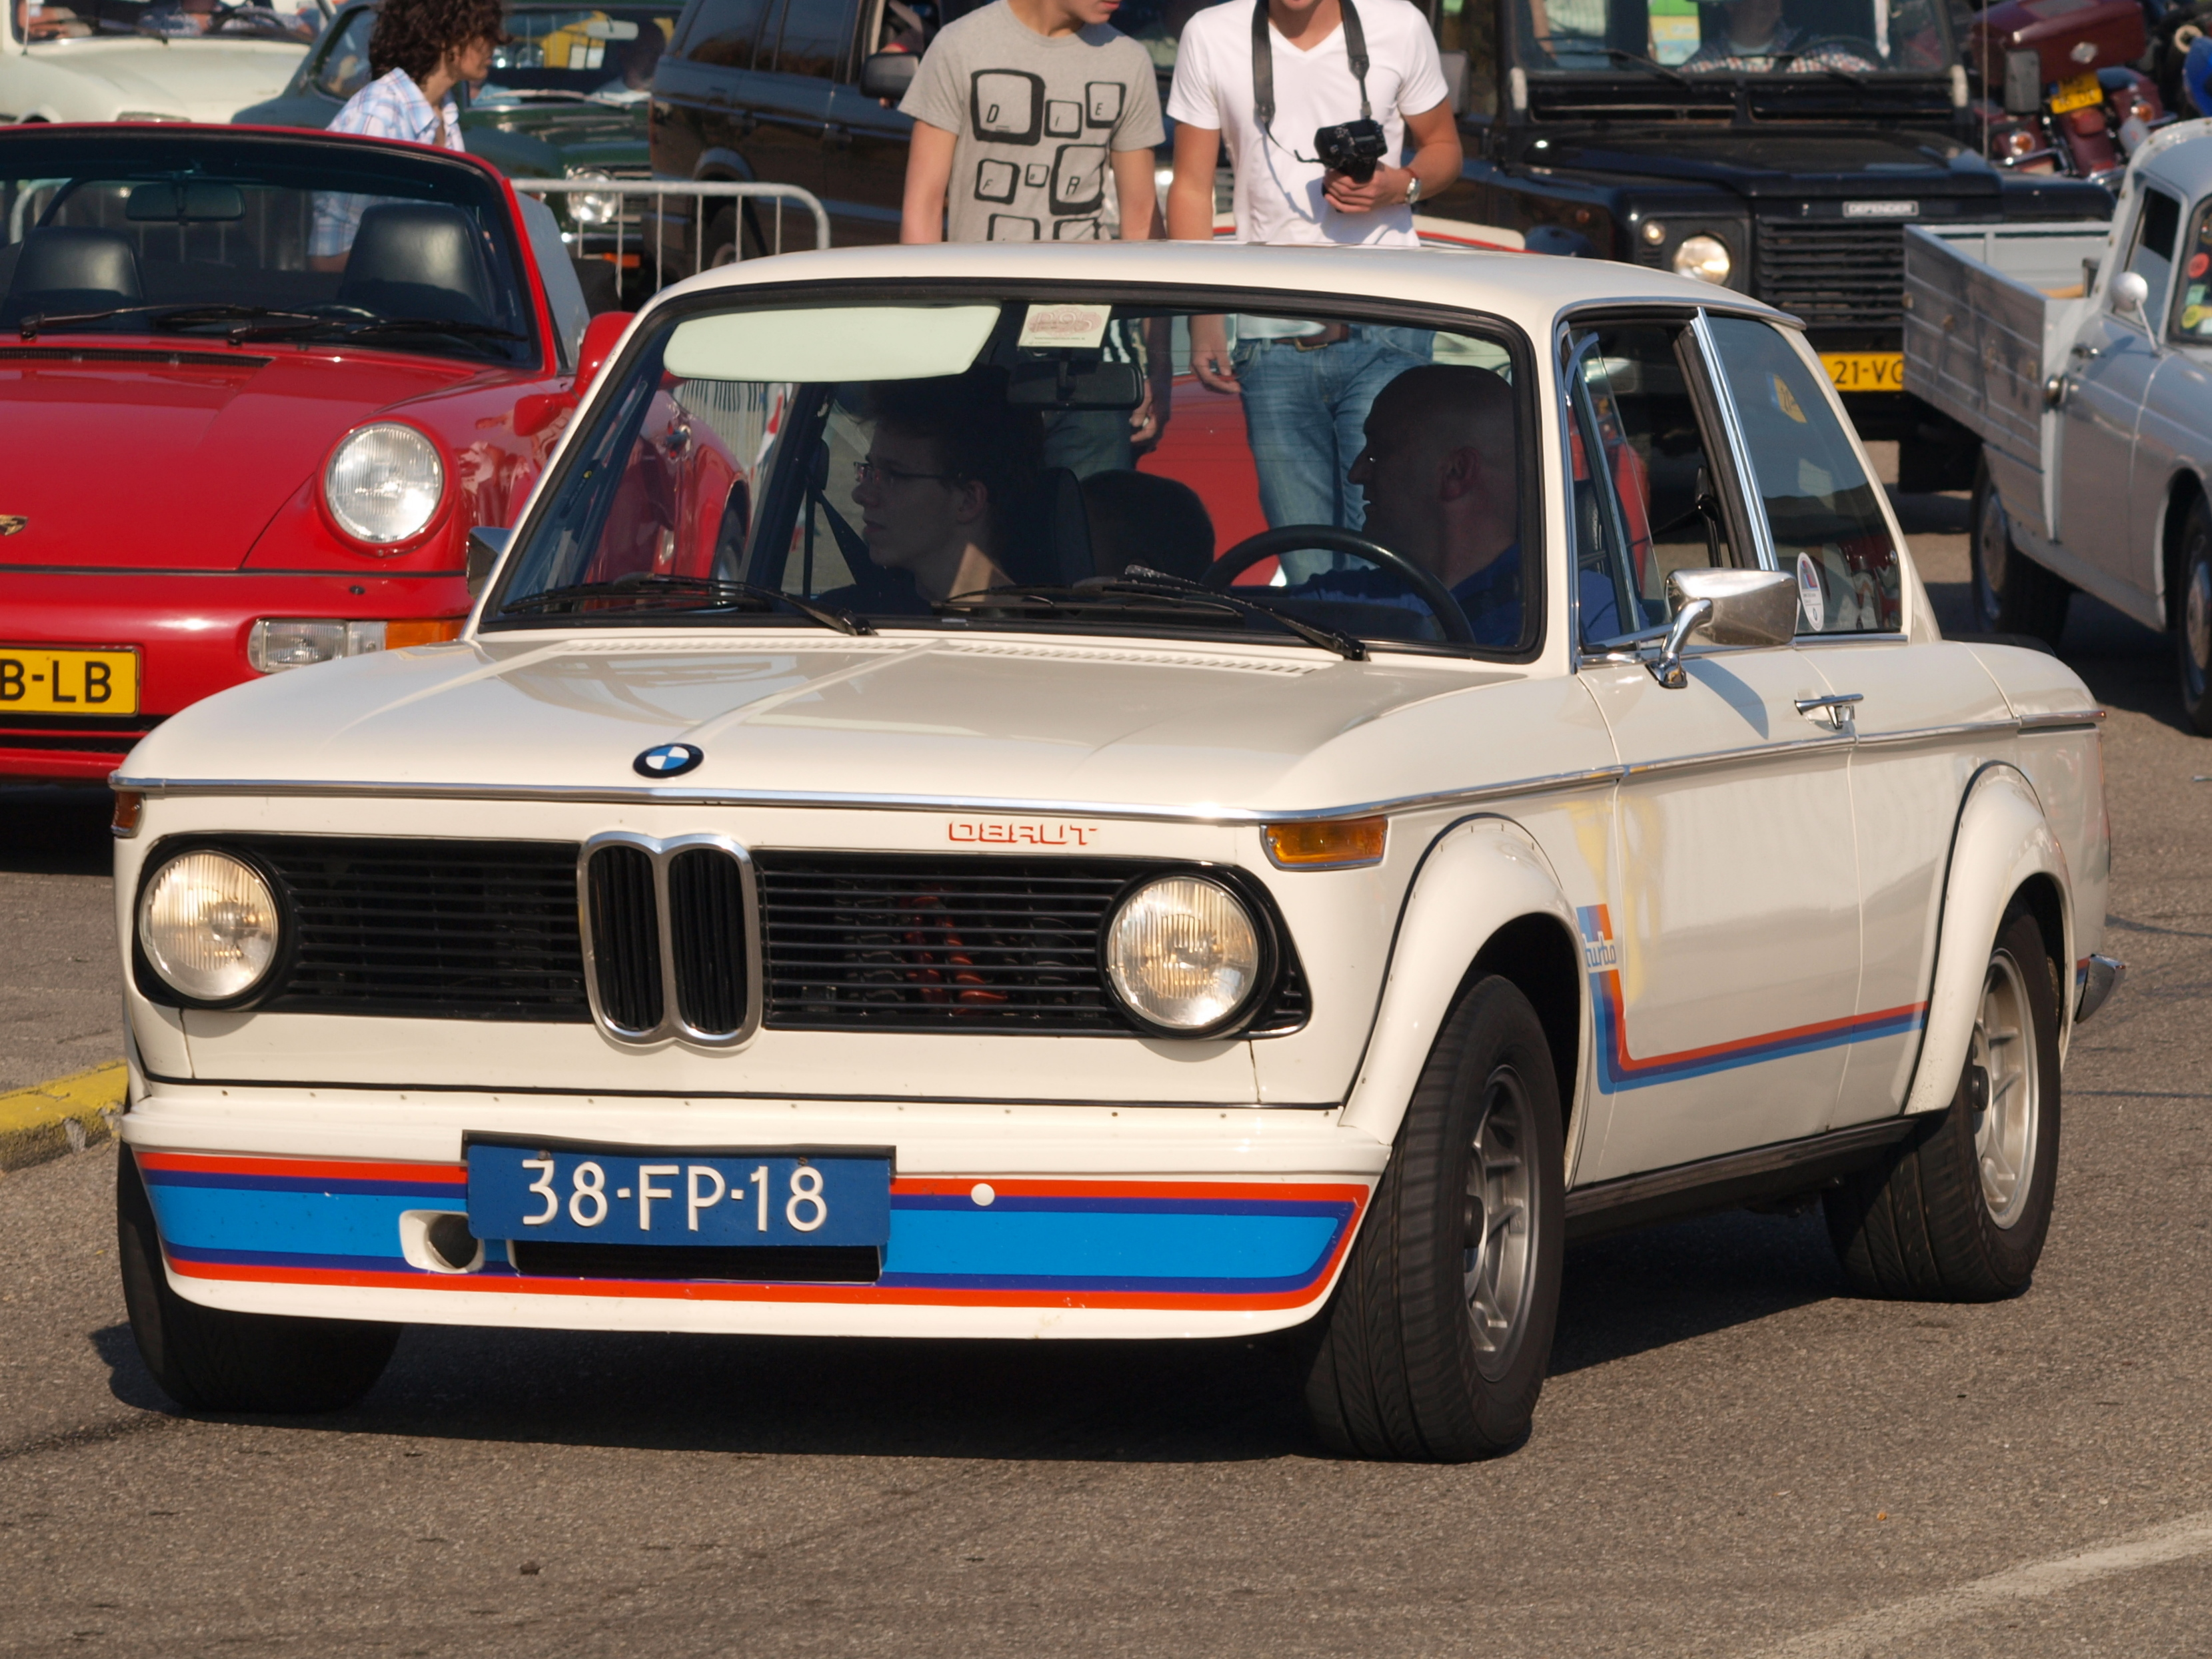 File Bmw 2002 Turbo Dutch Licence Registration 38 Fp 18